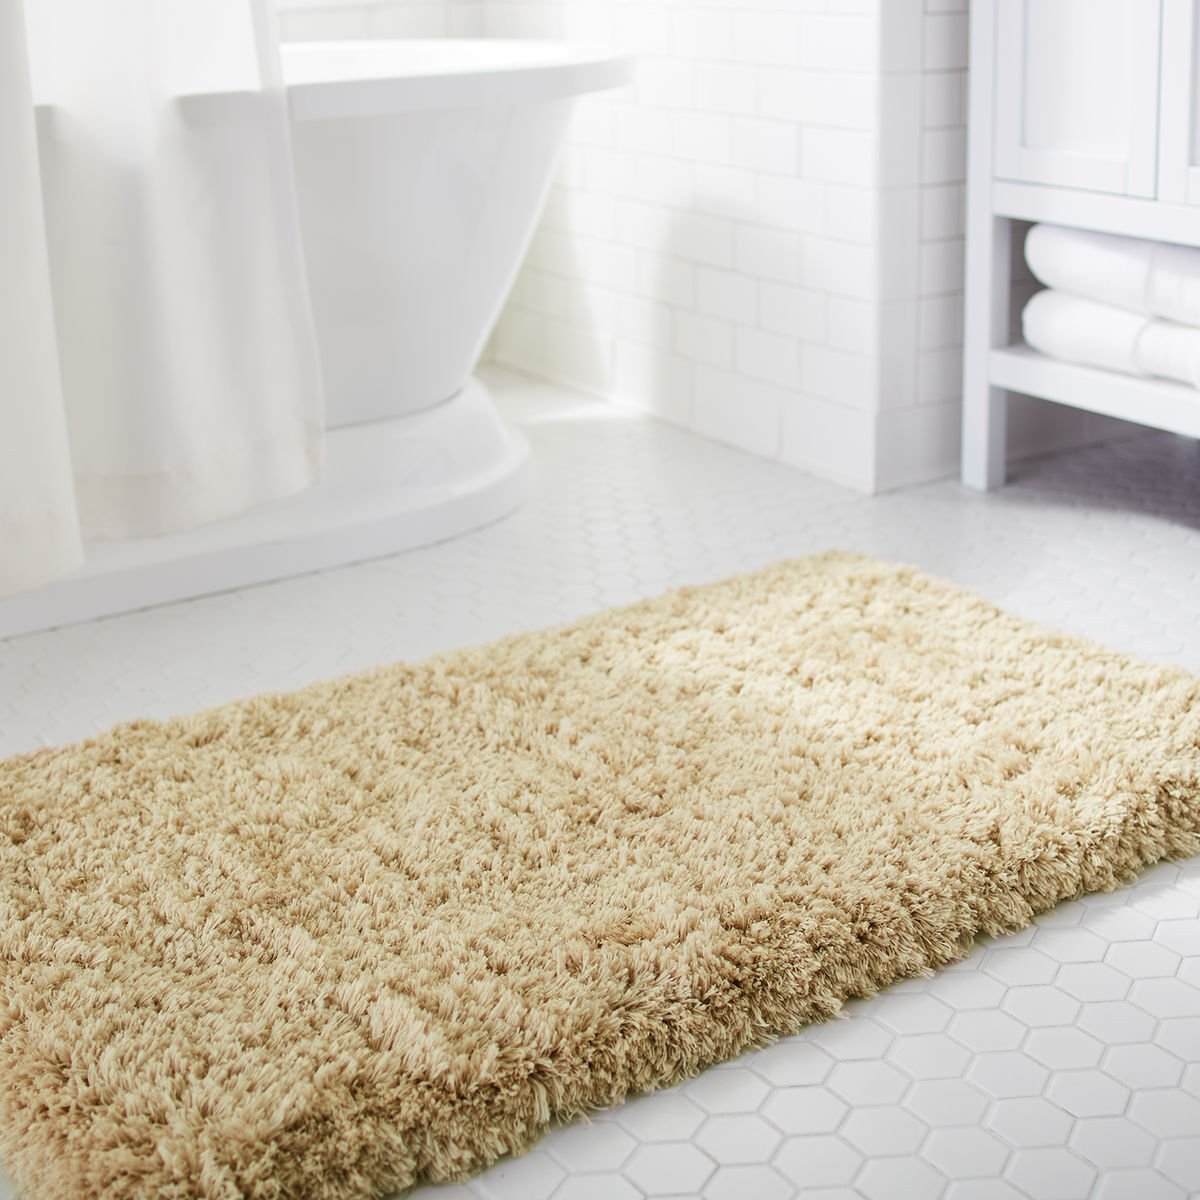 The Best Bathroom Rugs And Non-Slip Mats: Reviews & Buying Guide 14